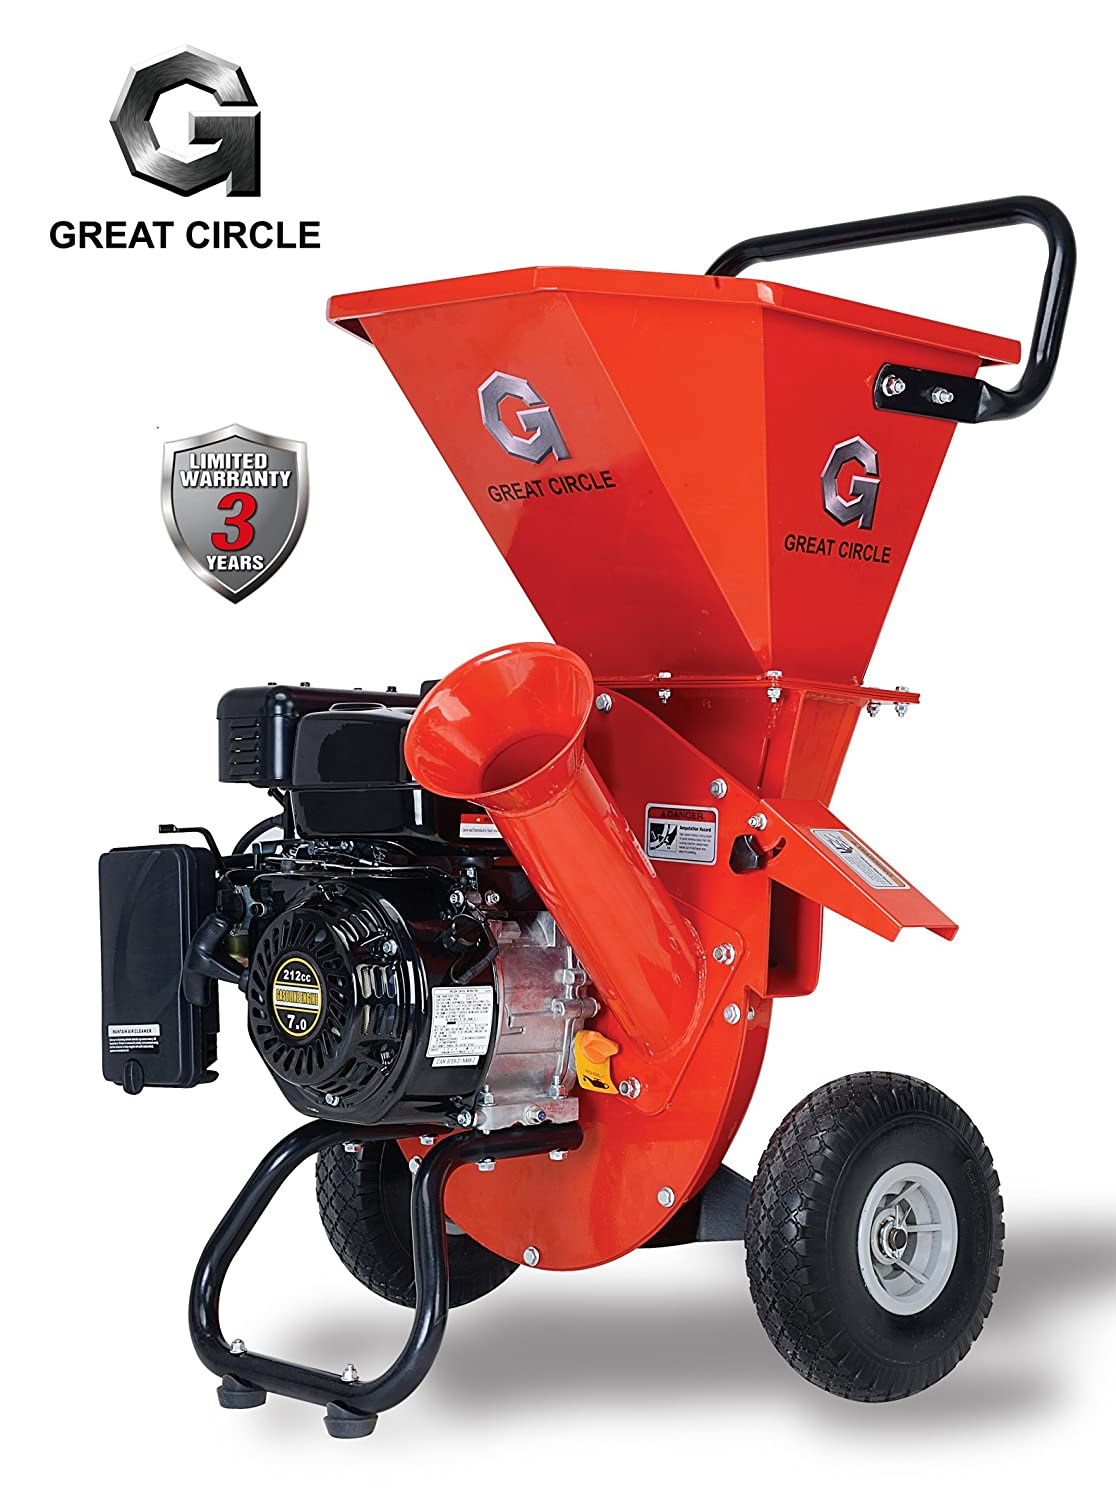 "best leaf shredder - GreatCircleUSA 6.5 HP Heavy Duty 212cc Gas Powered 3 IN 1 Multi-Function Pro Wood Chipper Shredder for Lawn and Garden Outdoor with 3"" max Wood Diameter Capacity, 3 Years Warranty"